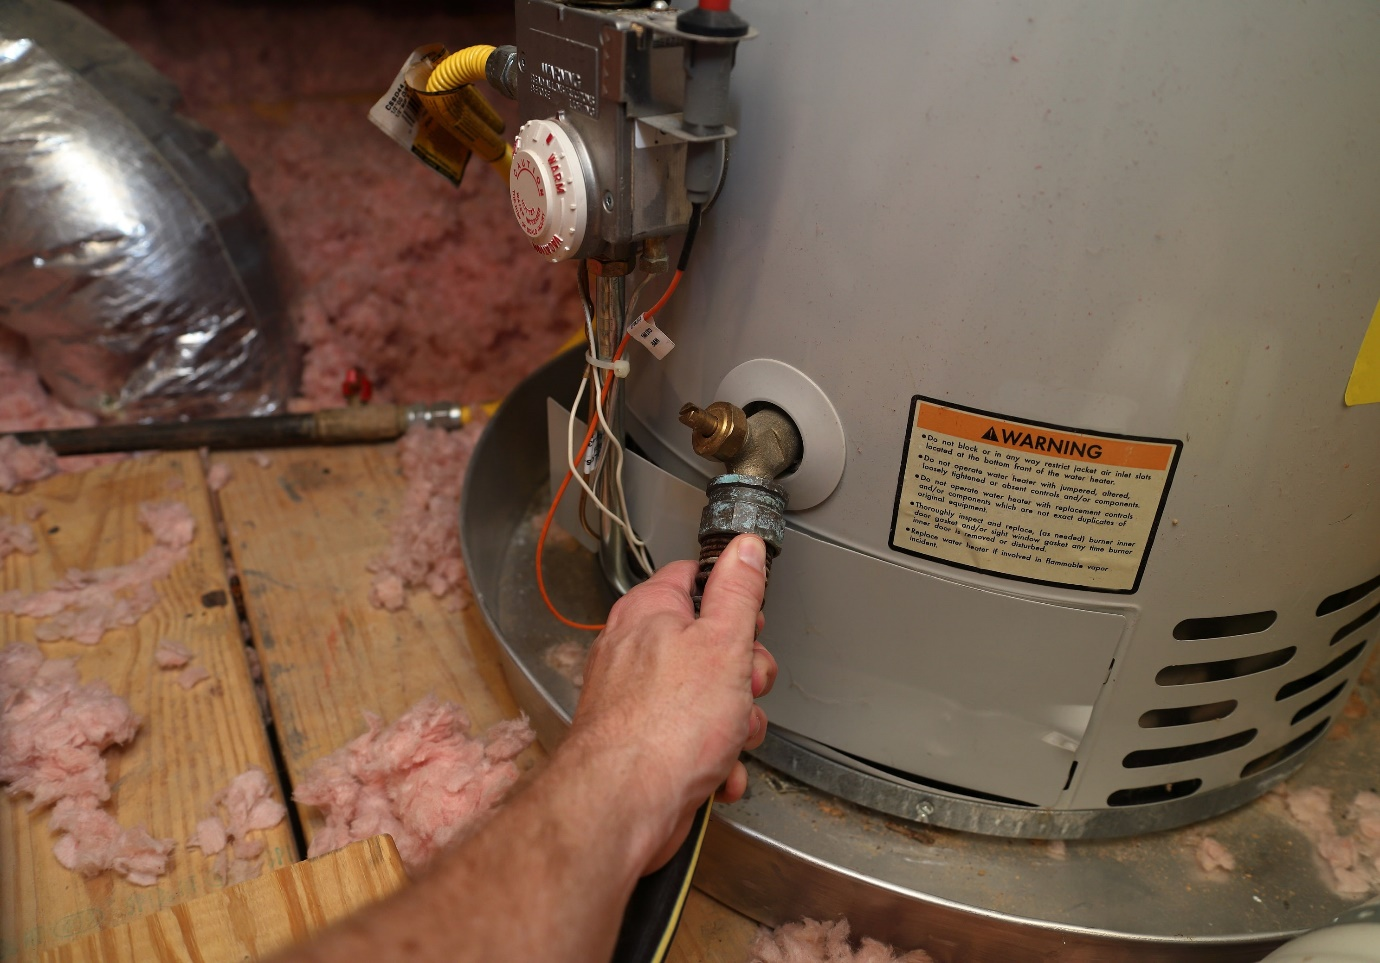 How Do You Drain A Water Heater with A Broken Drain Valve